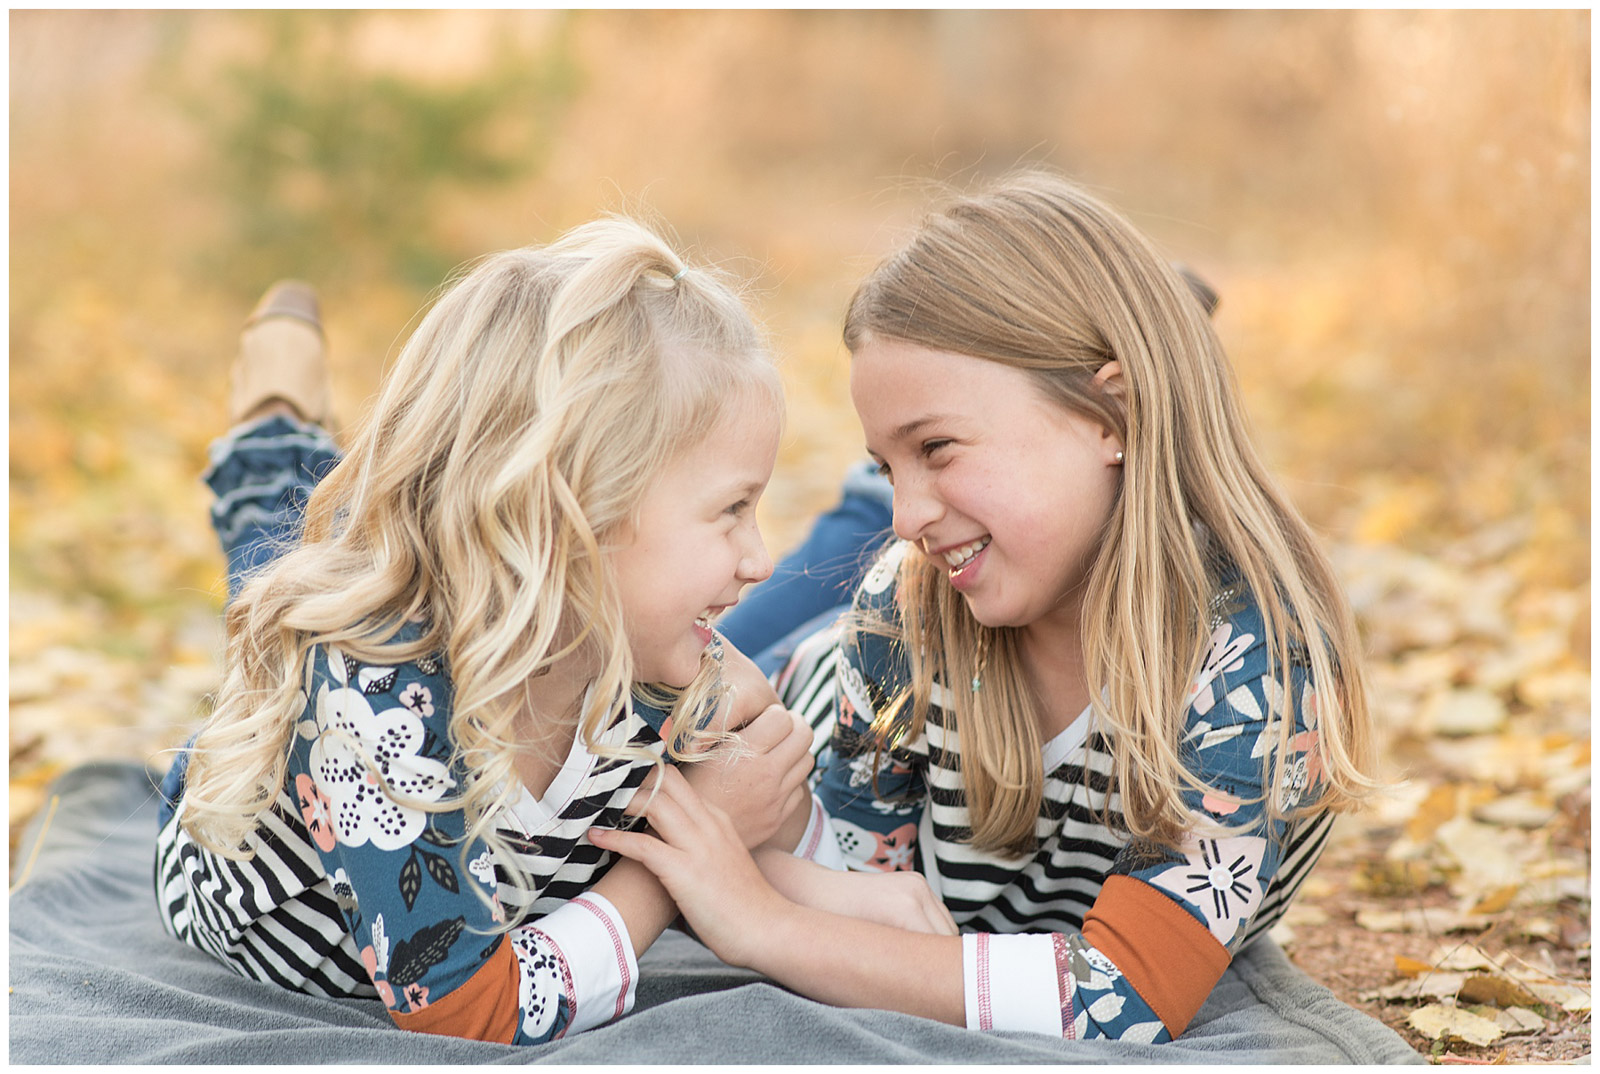 girls smiling together outside on blanket emily and erin drew esquared photography